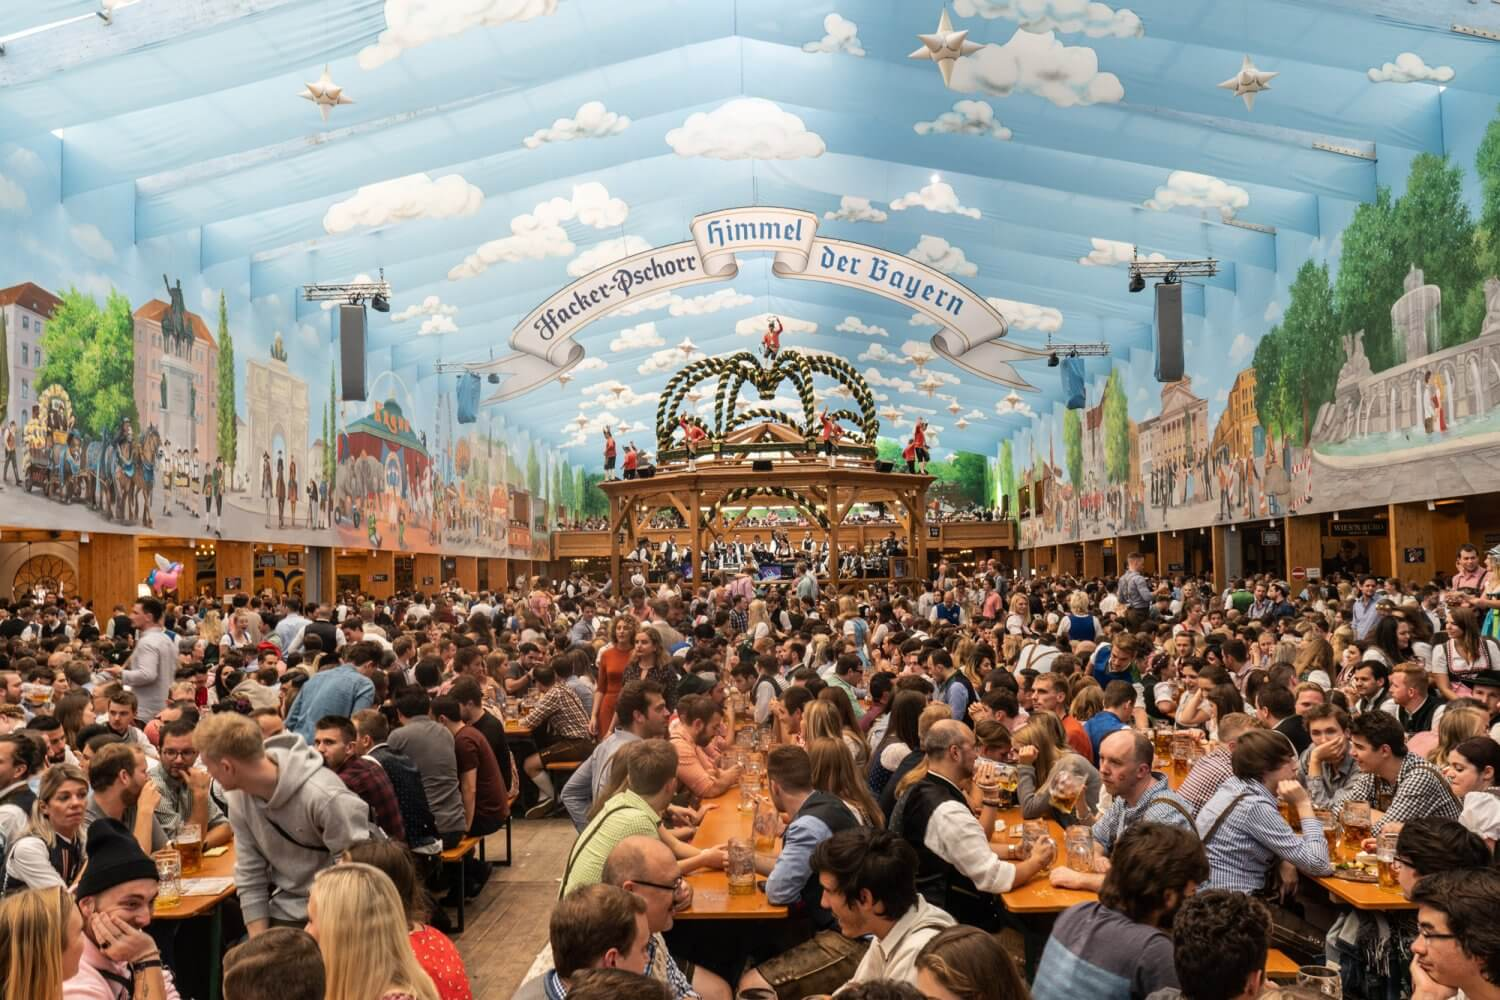 Hacker-Festhalle at Oktoberfest in Munich, Germany